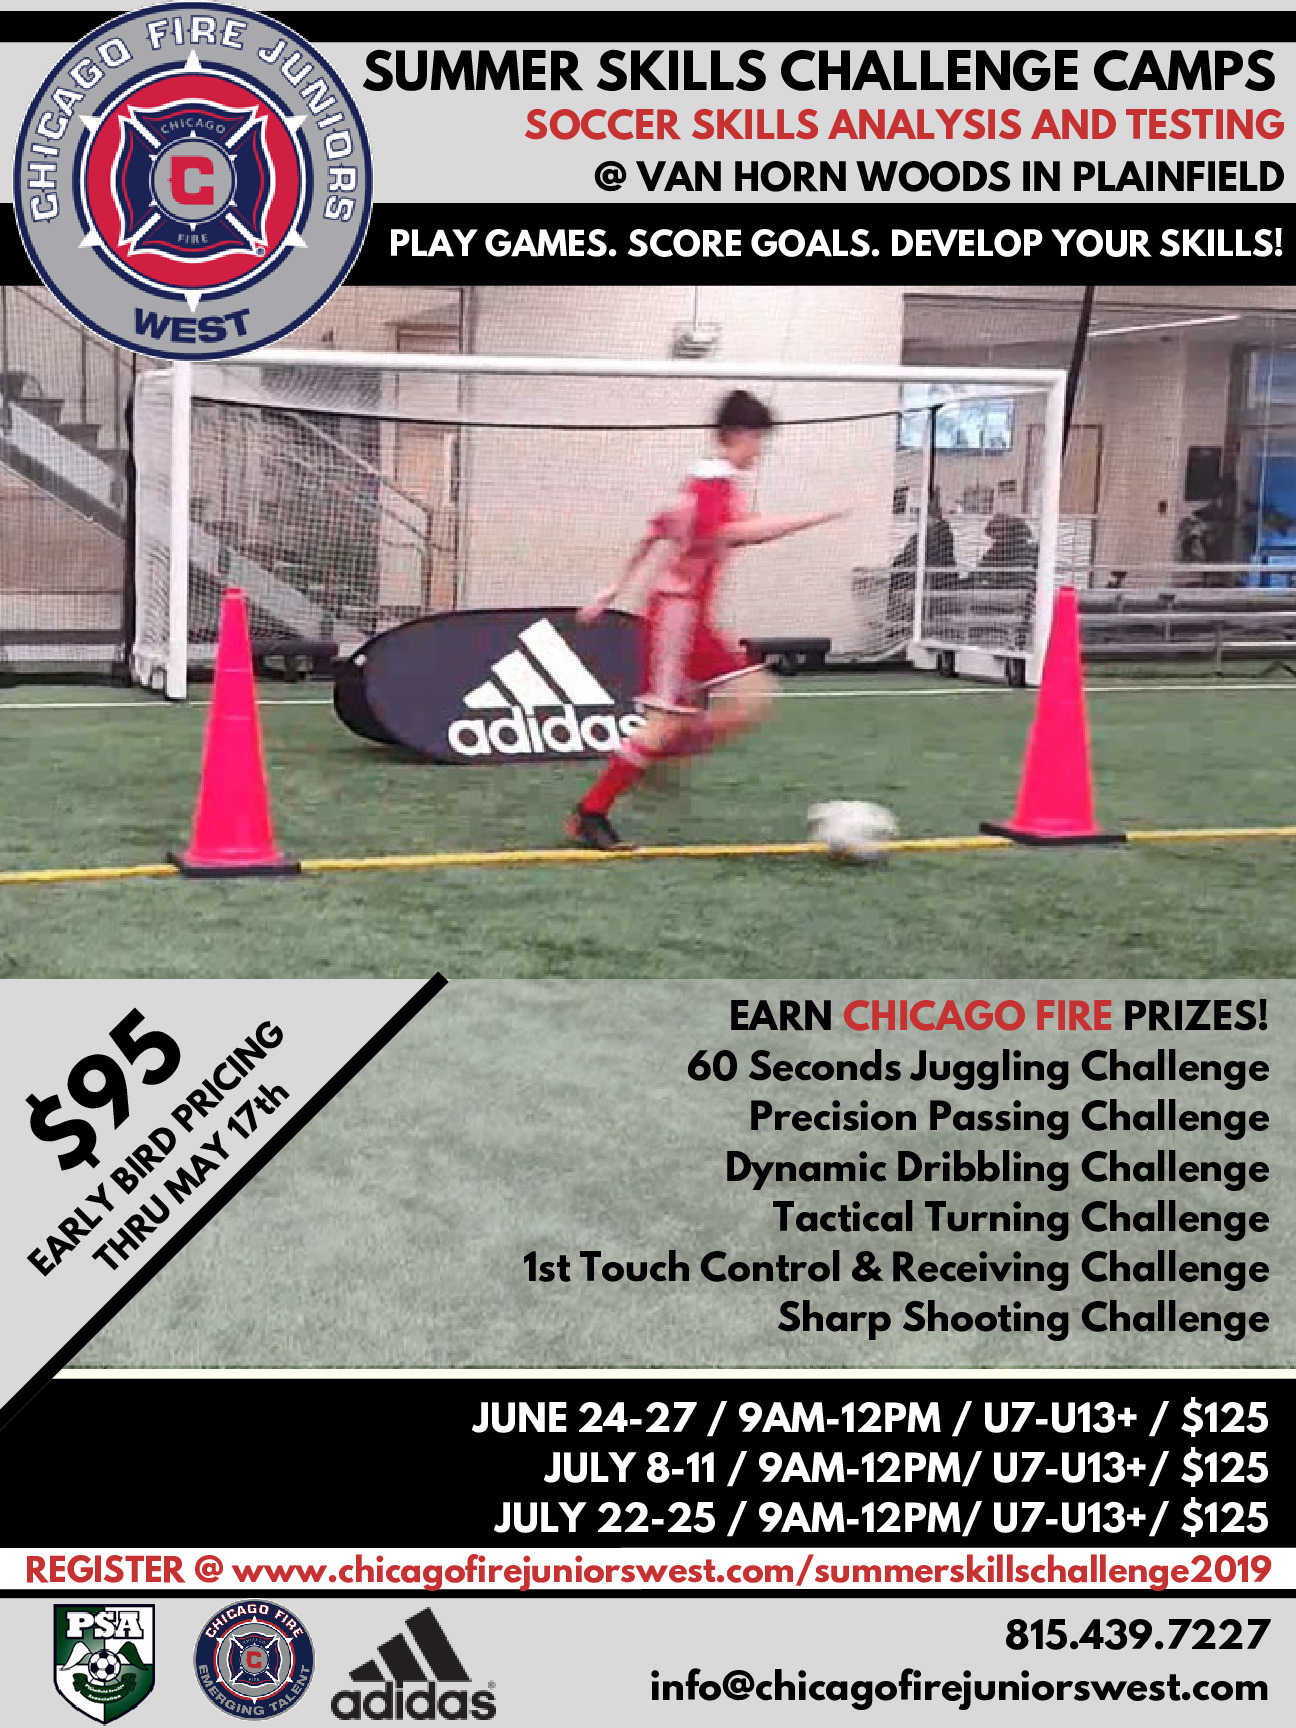 Chicago Fire Juniors West Soccer Club Summer Camps 2019